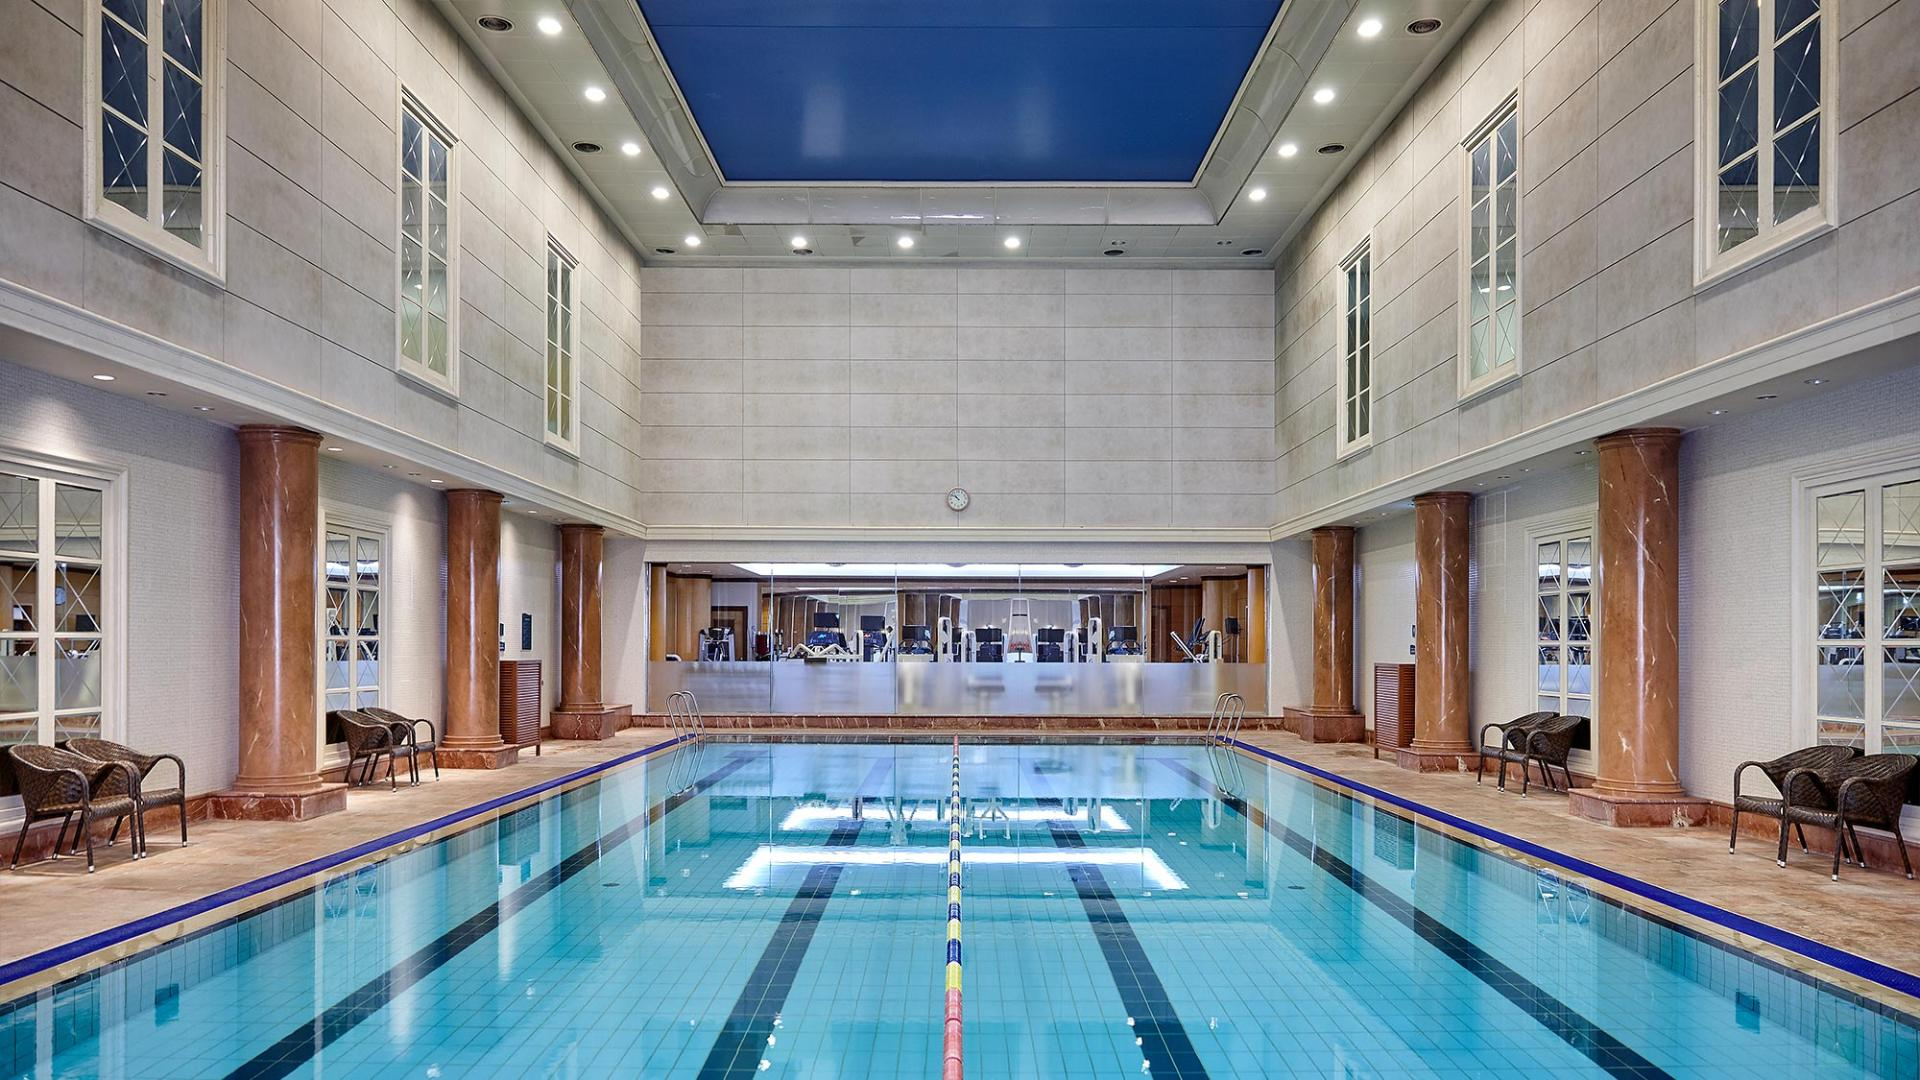 Lotte Hotel Jeju-Facilities-Spa & Fitness-Swimming Pool